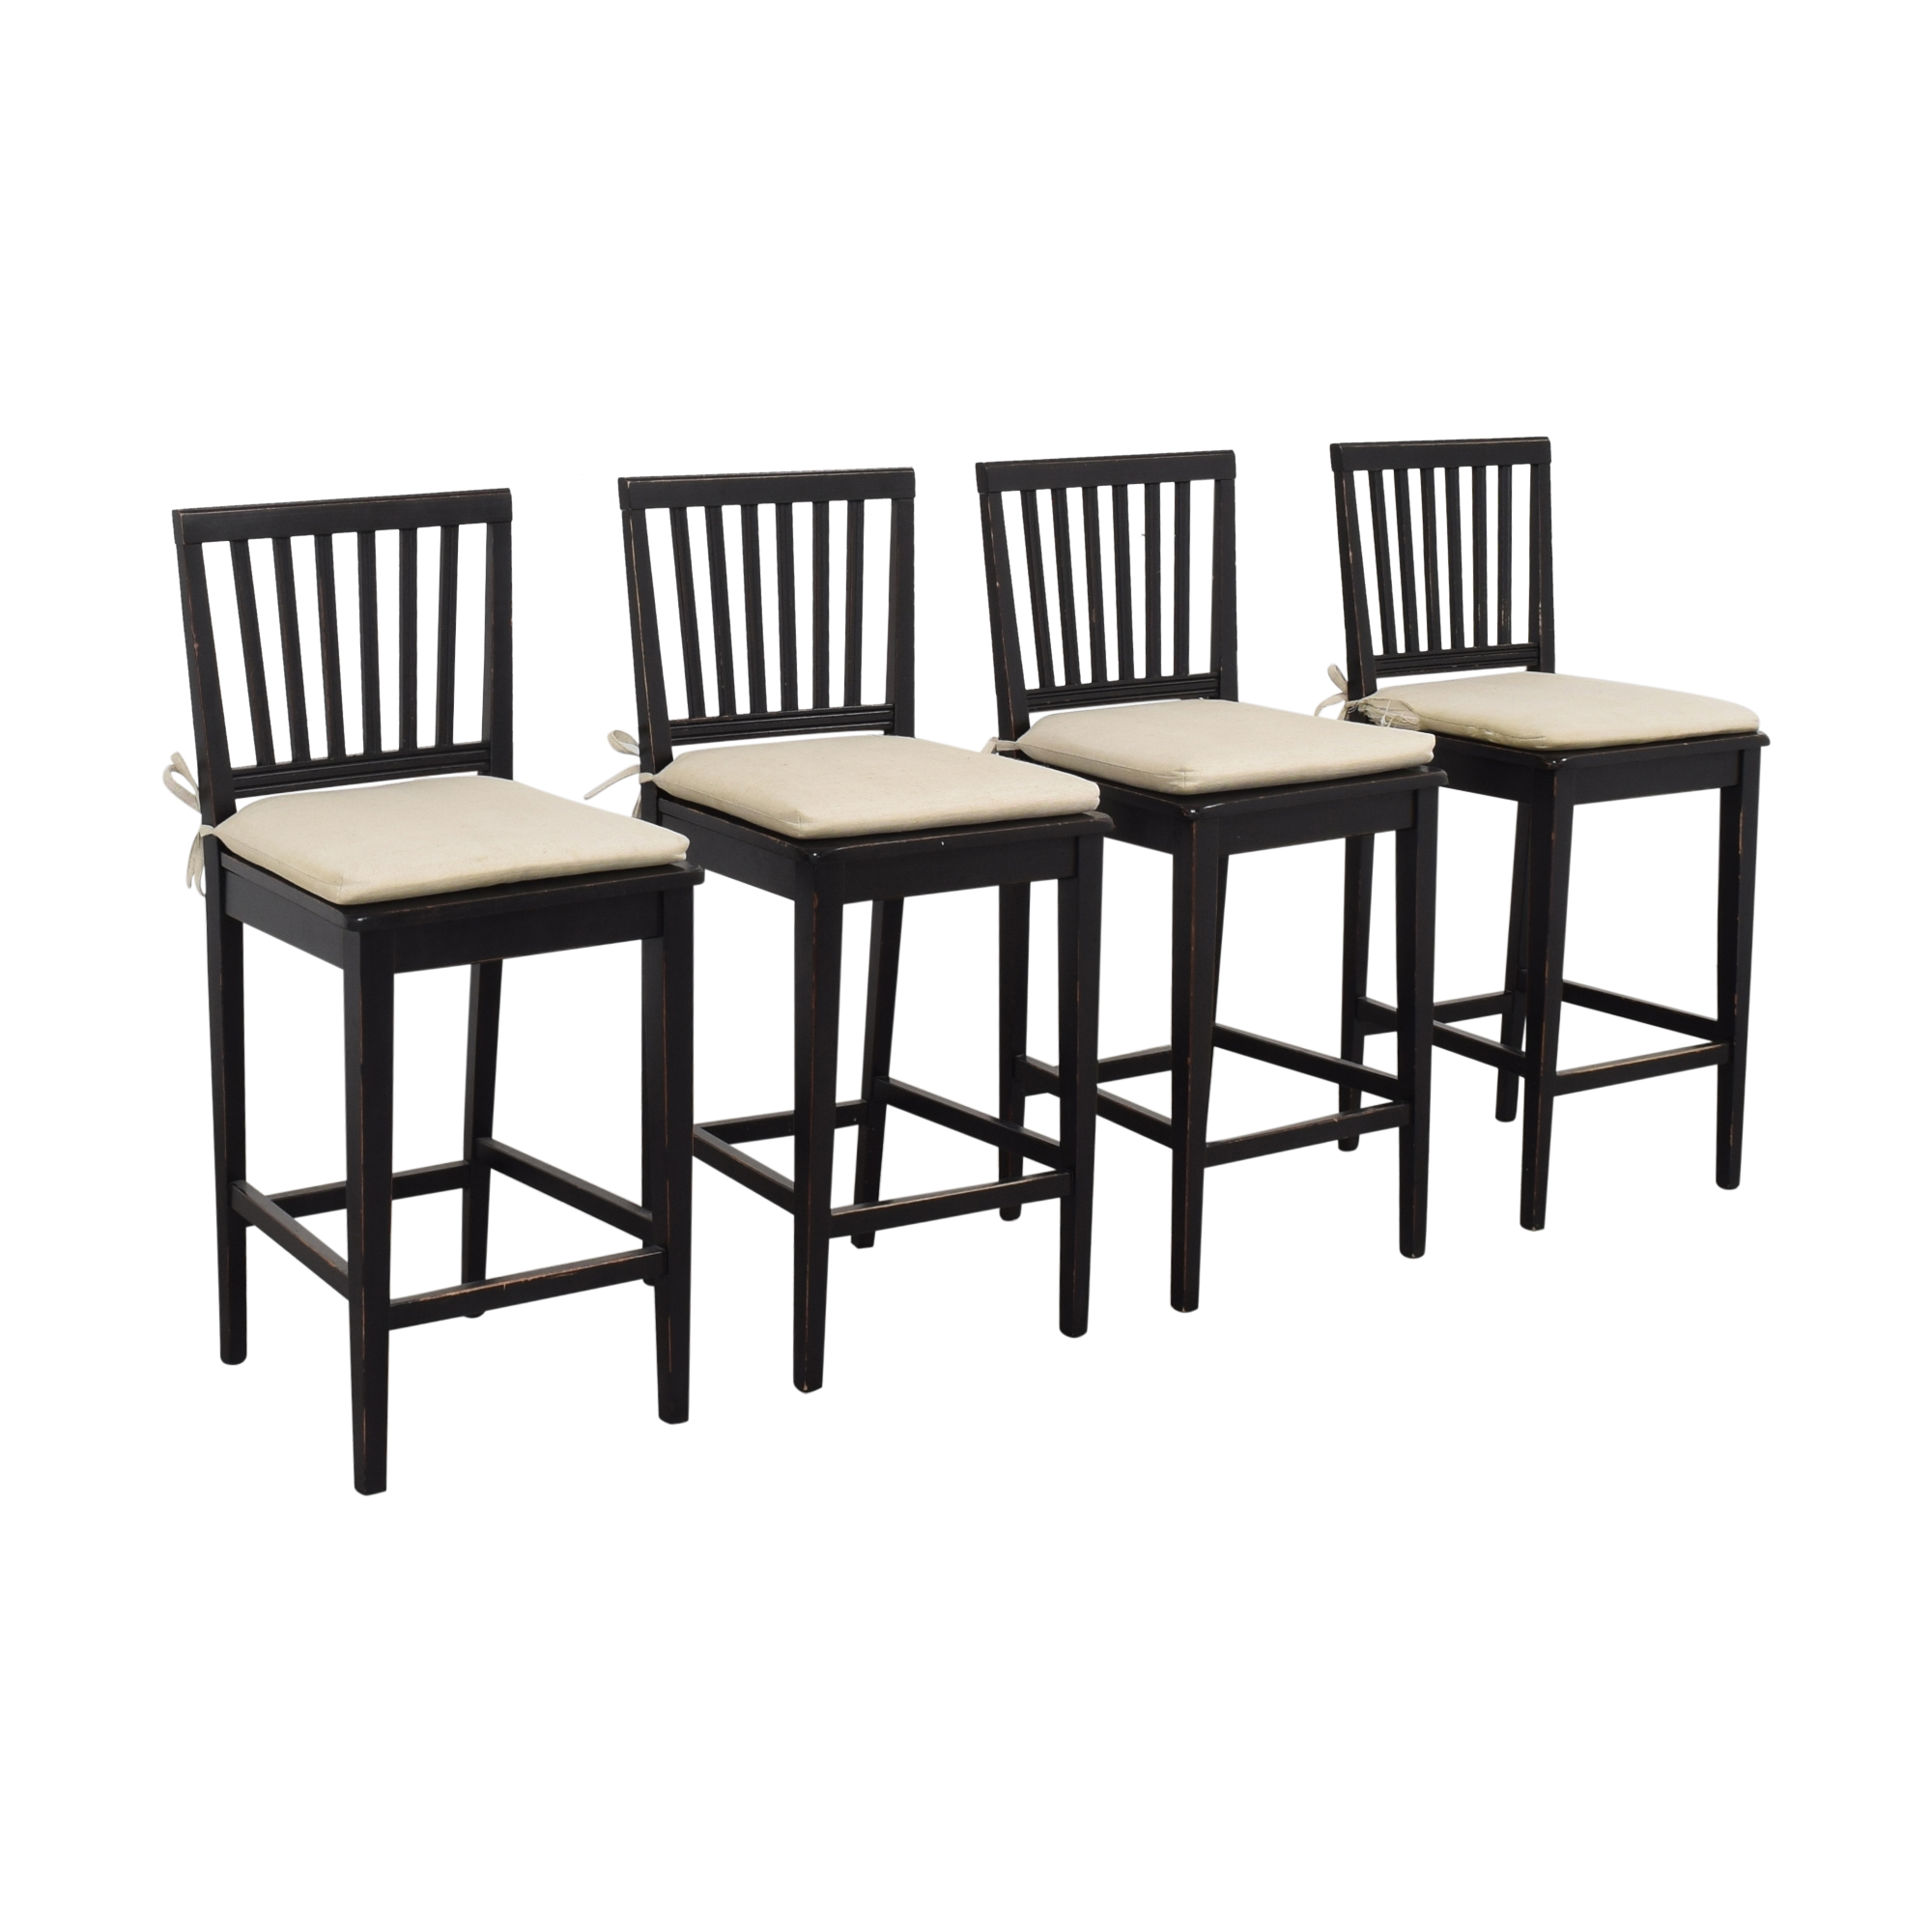 Crate & Barrel Buying & Design Counter Height Chairs / Stools